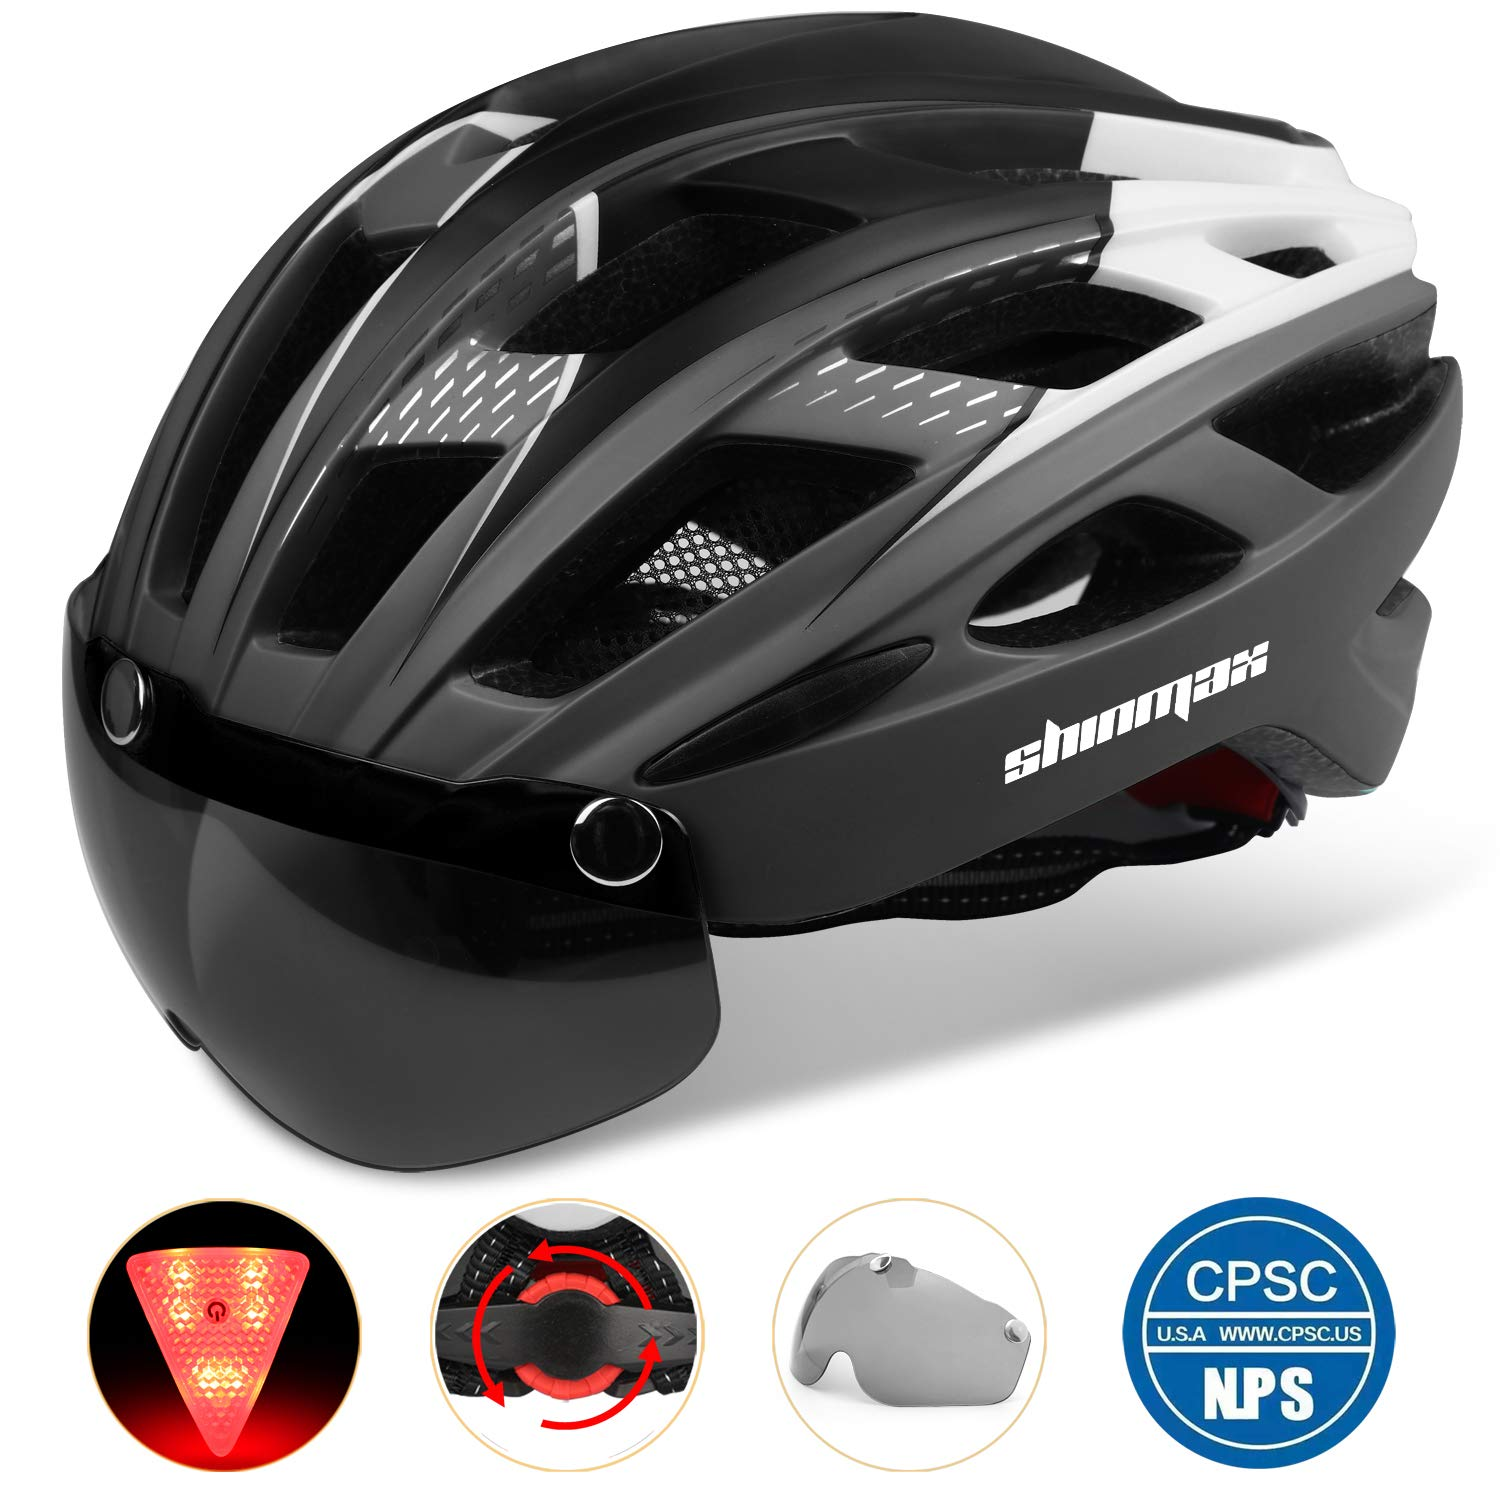 Shinmax Adults Bike Helmet,Bicycle Helmet CPSC CE Safety Standard Cycling Climbing Helmet MTB BMX Adjustable Helmet with Removable Shield Visor Safty Rear Led Light for Road Men Women